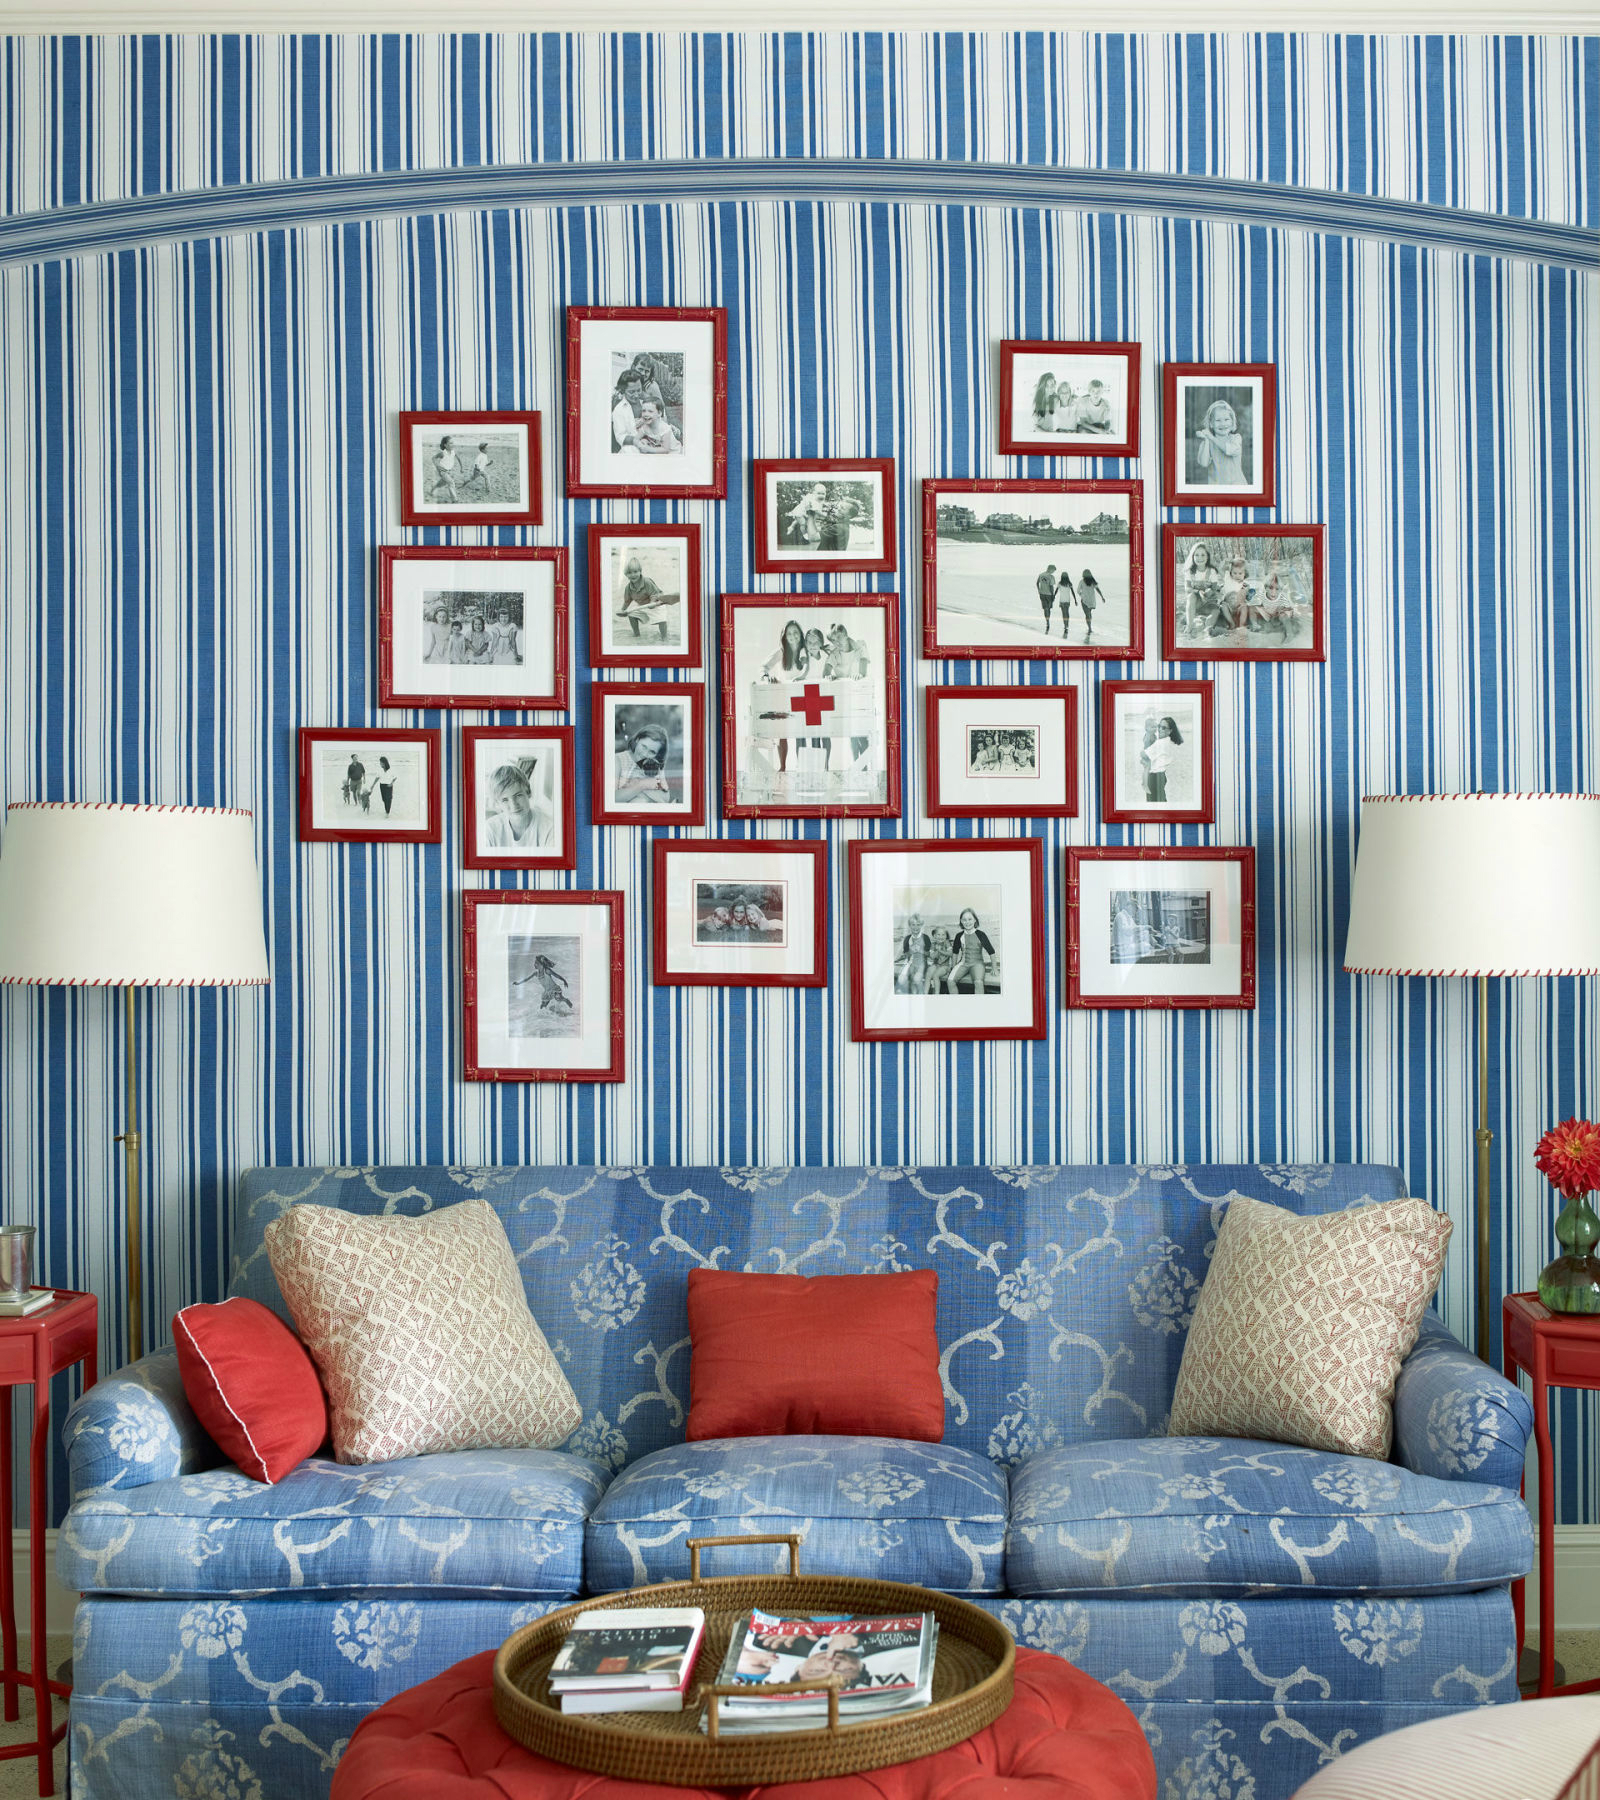 10 Chic Ways to Decorate in Red, White and Blue stripes